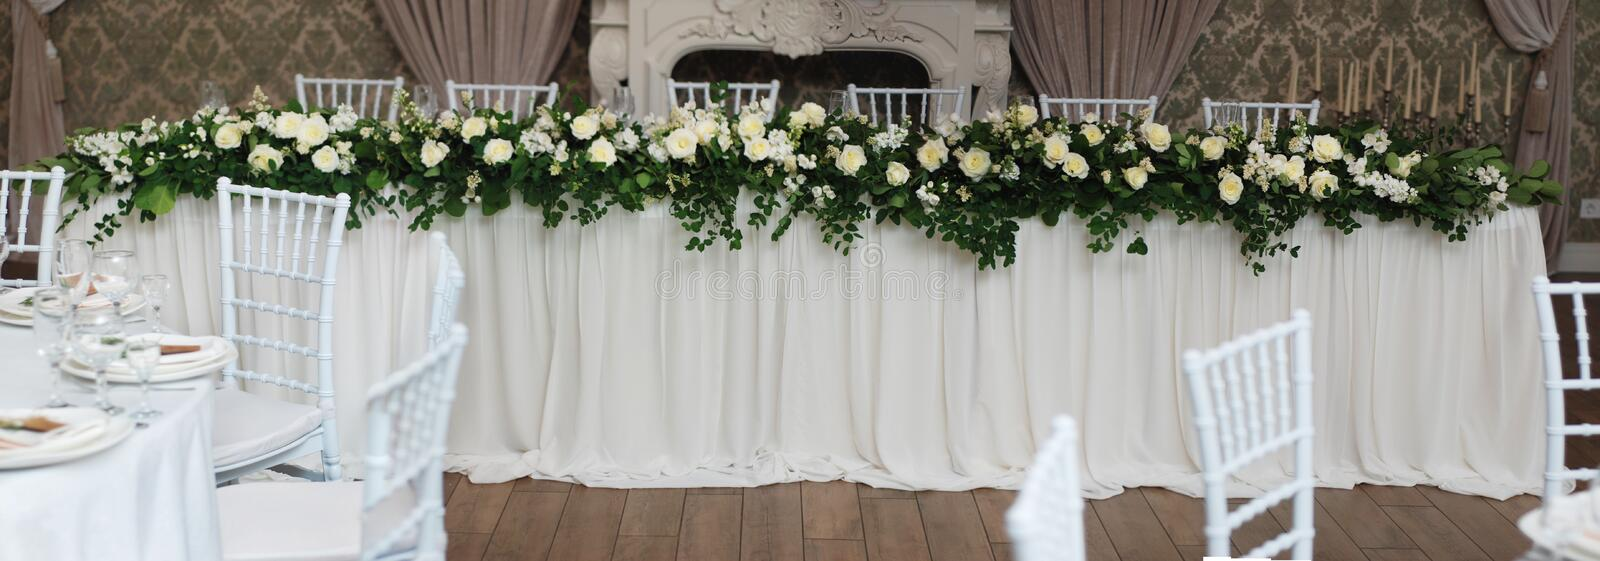 Beautiful White and Green Flower Decoration Arrangement on Wedding Table. Wedding Bridal Flower Decoration. Banner. Beautiful White and Green Flower Decoration royalty free stock images